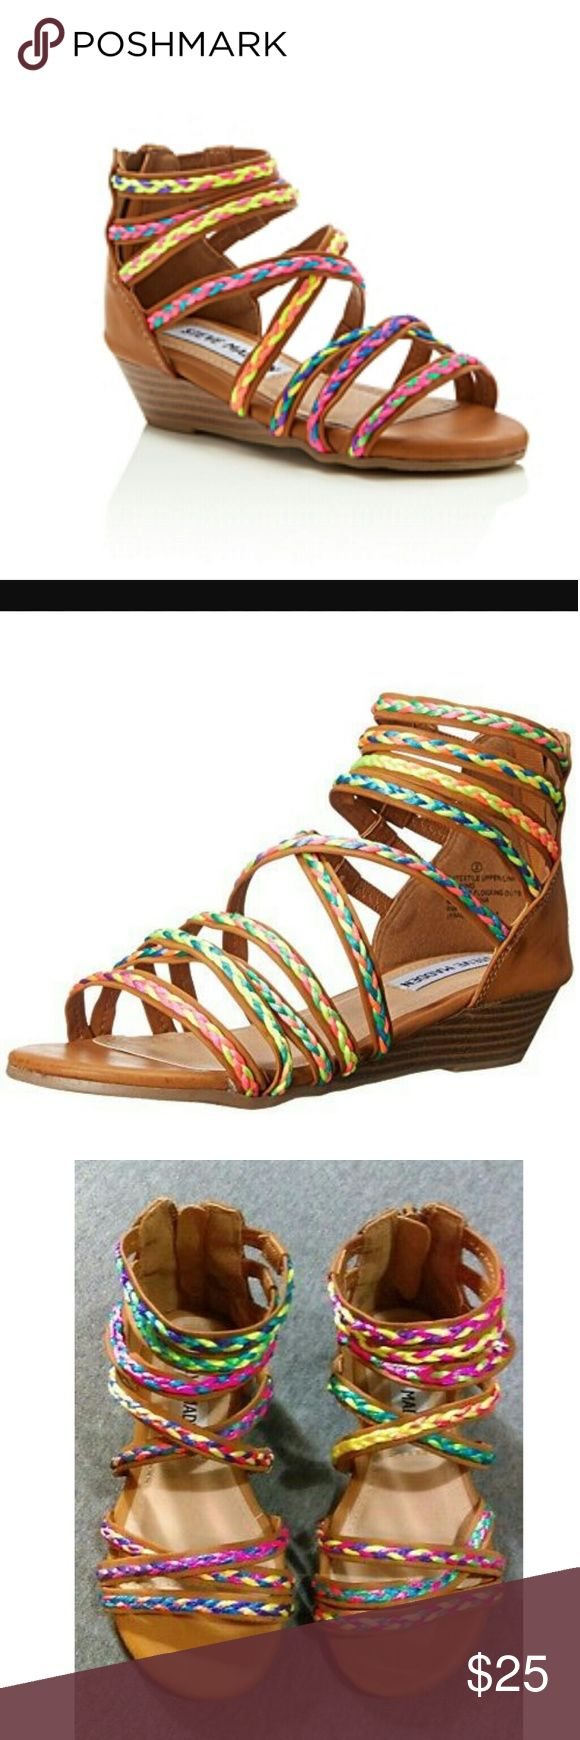 Steve Madden Girls' Tracey Wedge Sandals - Toddler Steve Madden? Kids festival style for your colorful little ones! Above ankle gladiator silhouette. Synthetic upper with multicolored braided details. Rear zipped for a close fit. Synthetic lining with lightly padded footbed. Synthetic wedge and outsole. Imported. Measurements:Heel Height: 1 inWeight: 6 ozPlatform Height: 1?4 in Steve Madden Shoes Dress Shoes